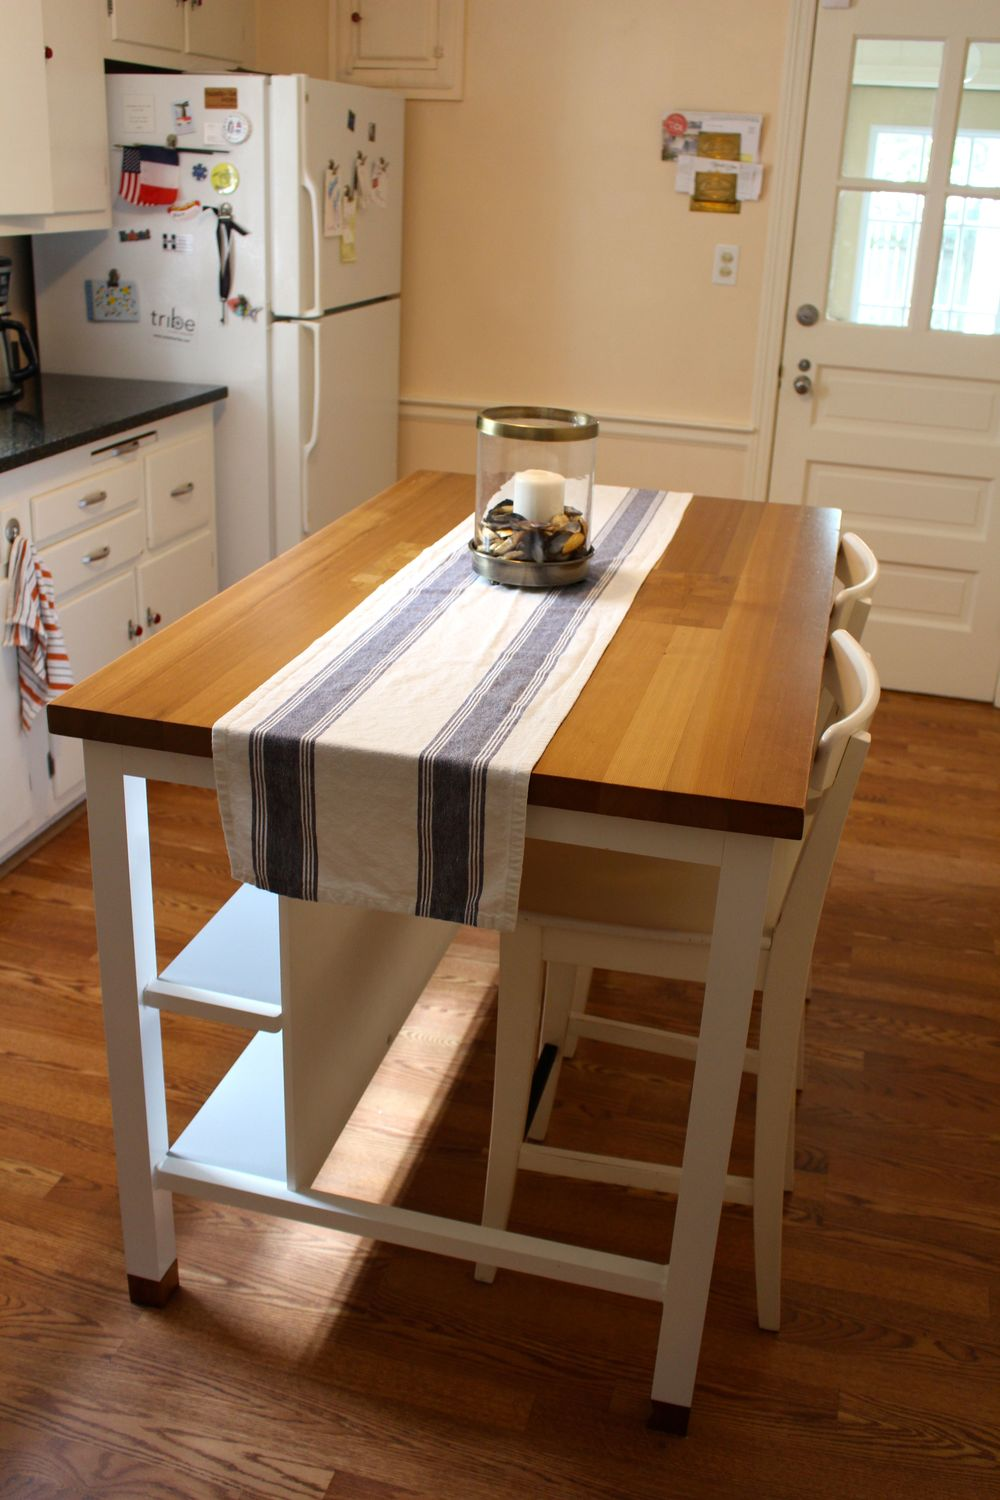 We found a handmade version of the kitchen island I wanted from IKEA - an hour away from us.